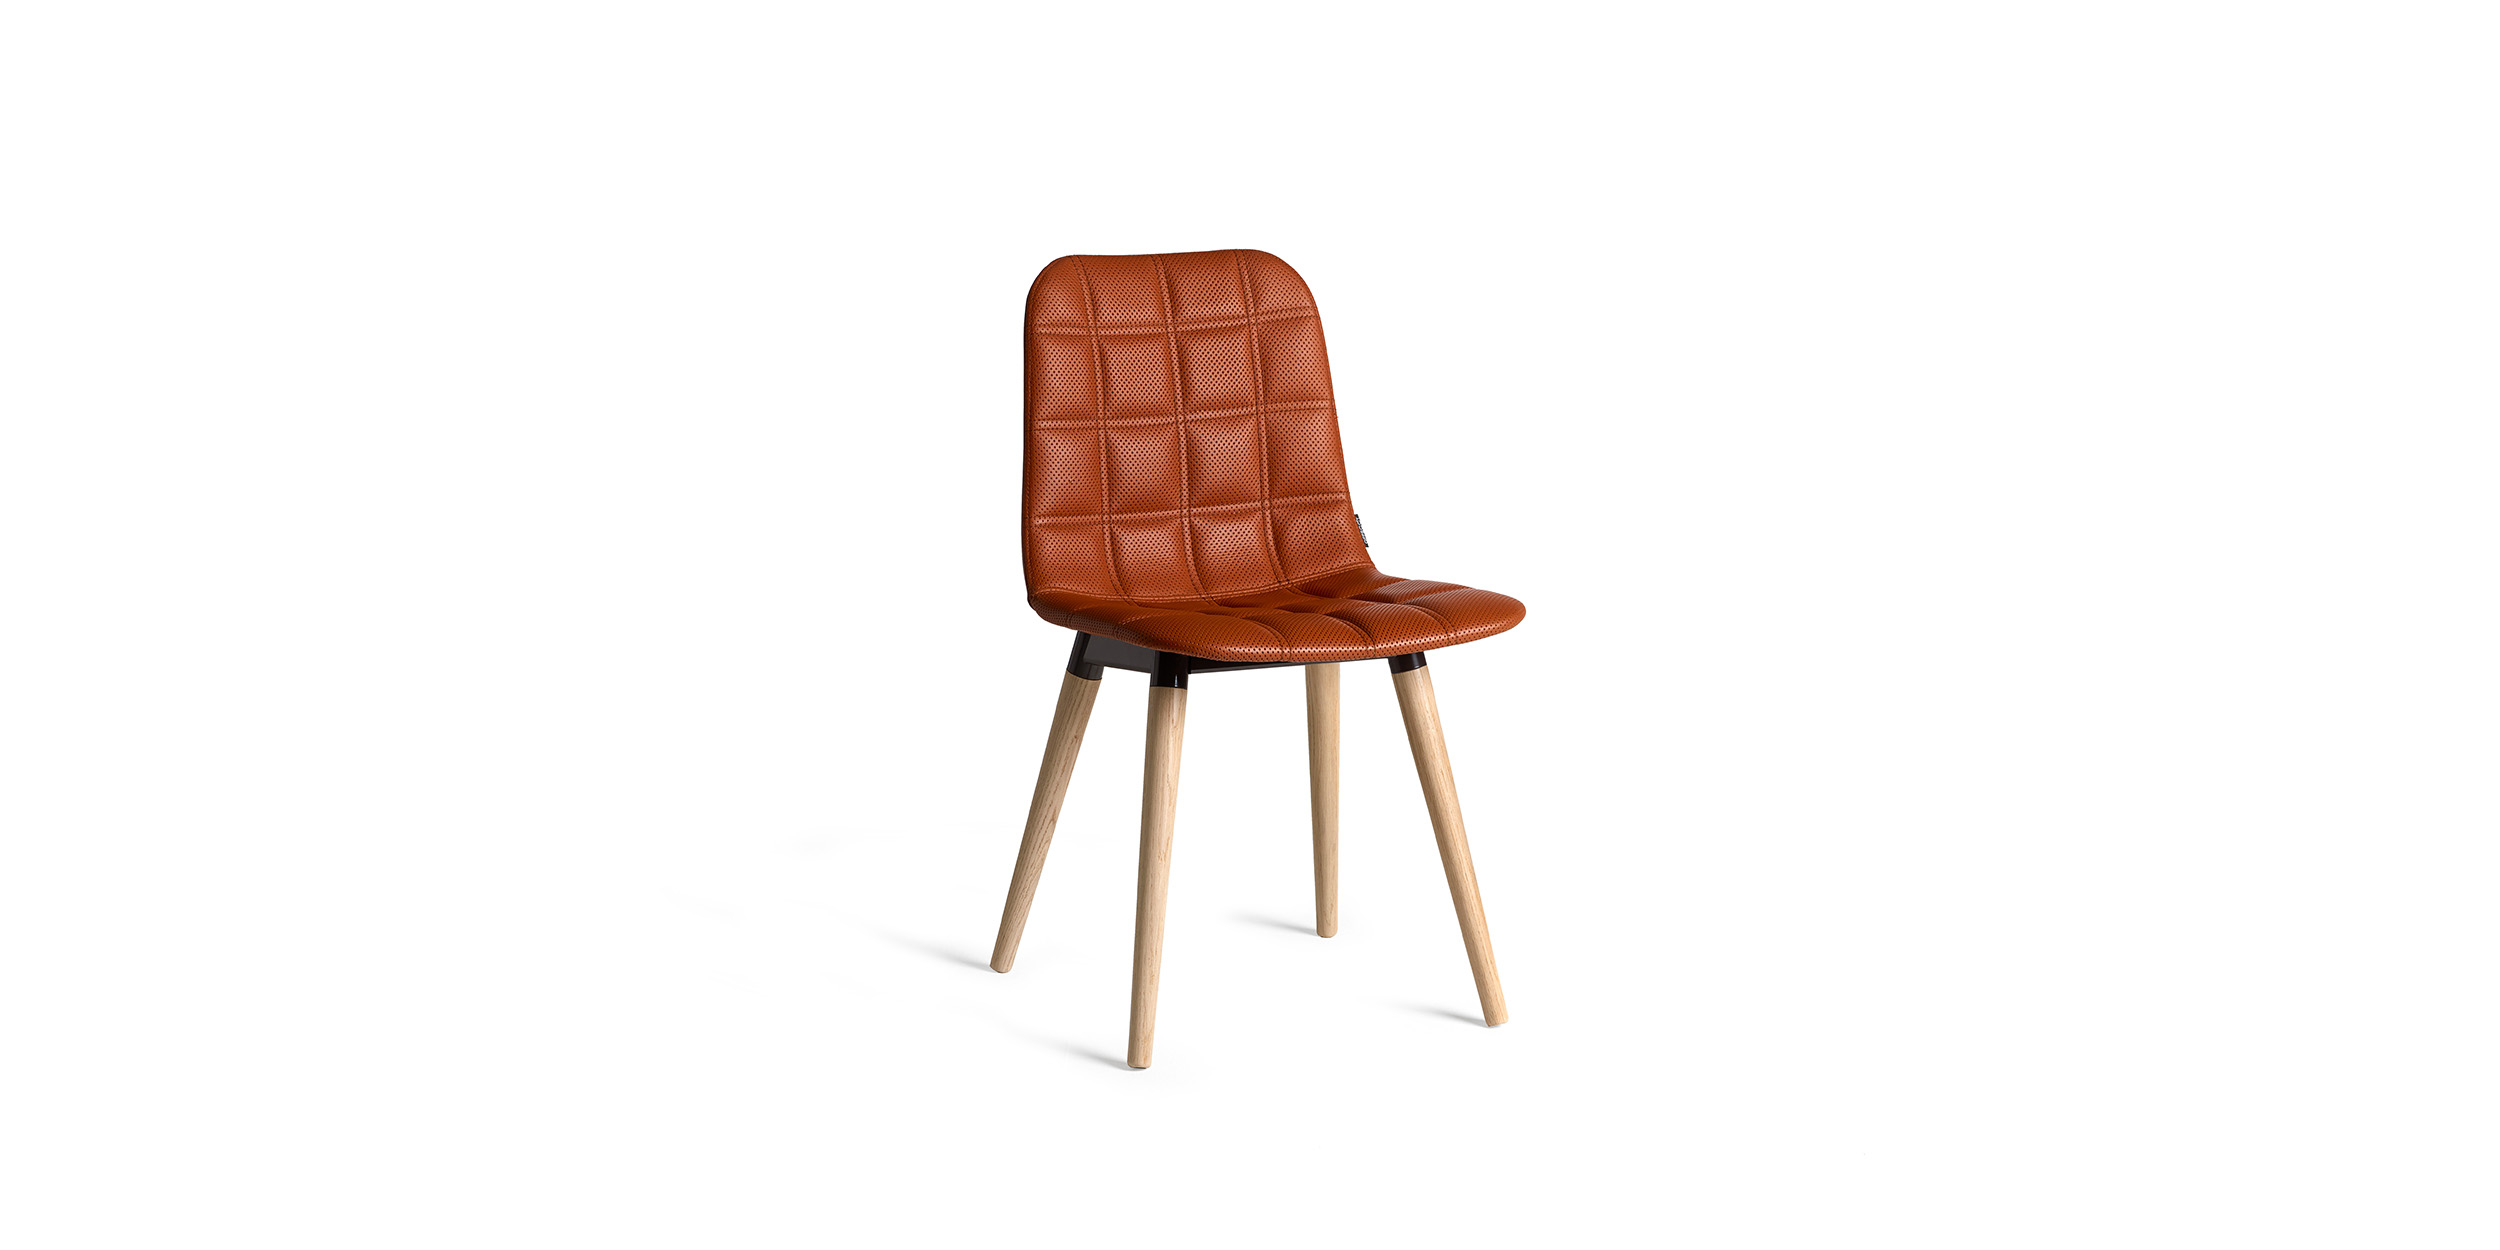 Bop Wood, Chair by Knudsen Berg Hindenes